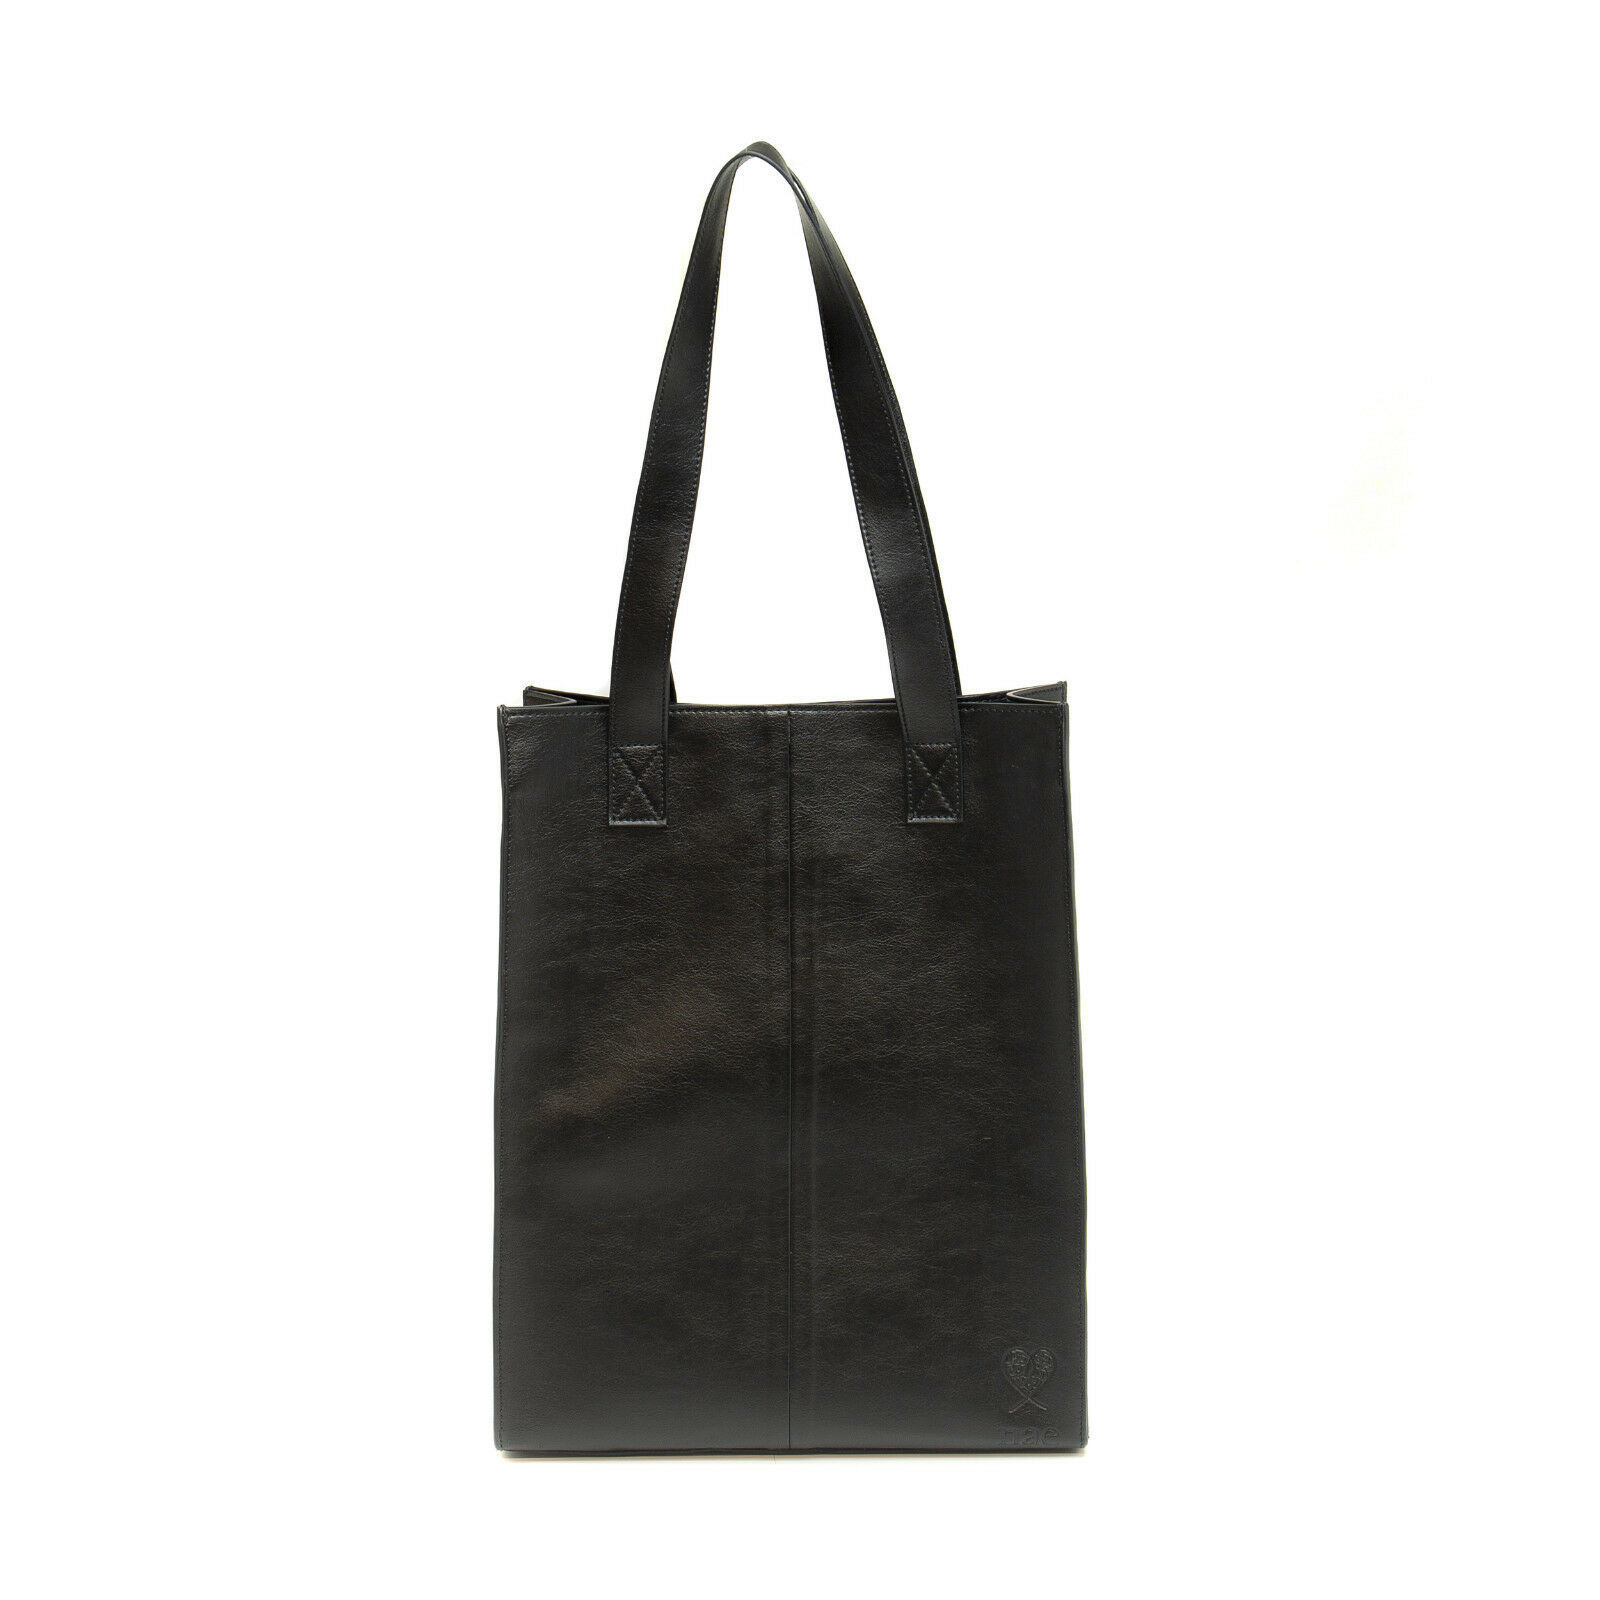 Primary image for Women Vegan Tote Bag Black Sustainable Ecological Silver Magnet Water-Resistant